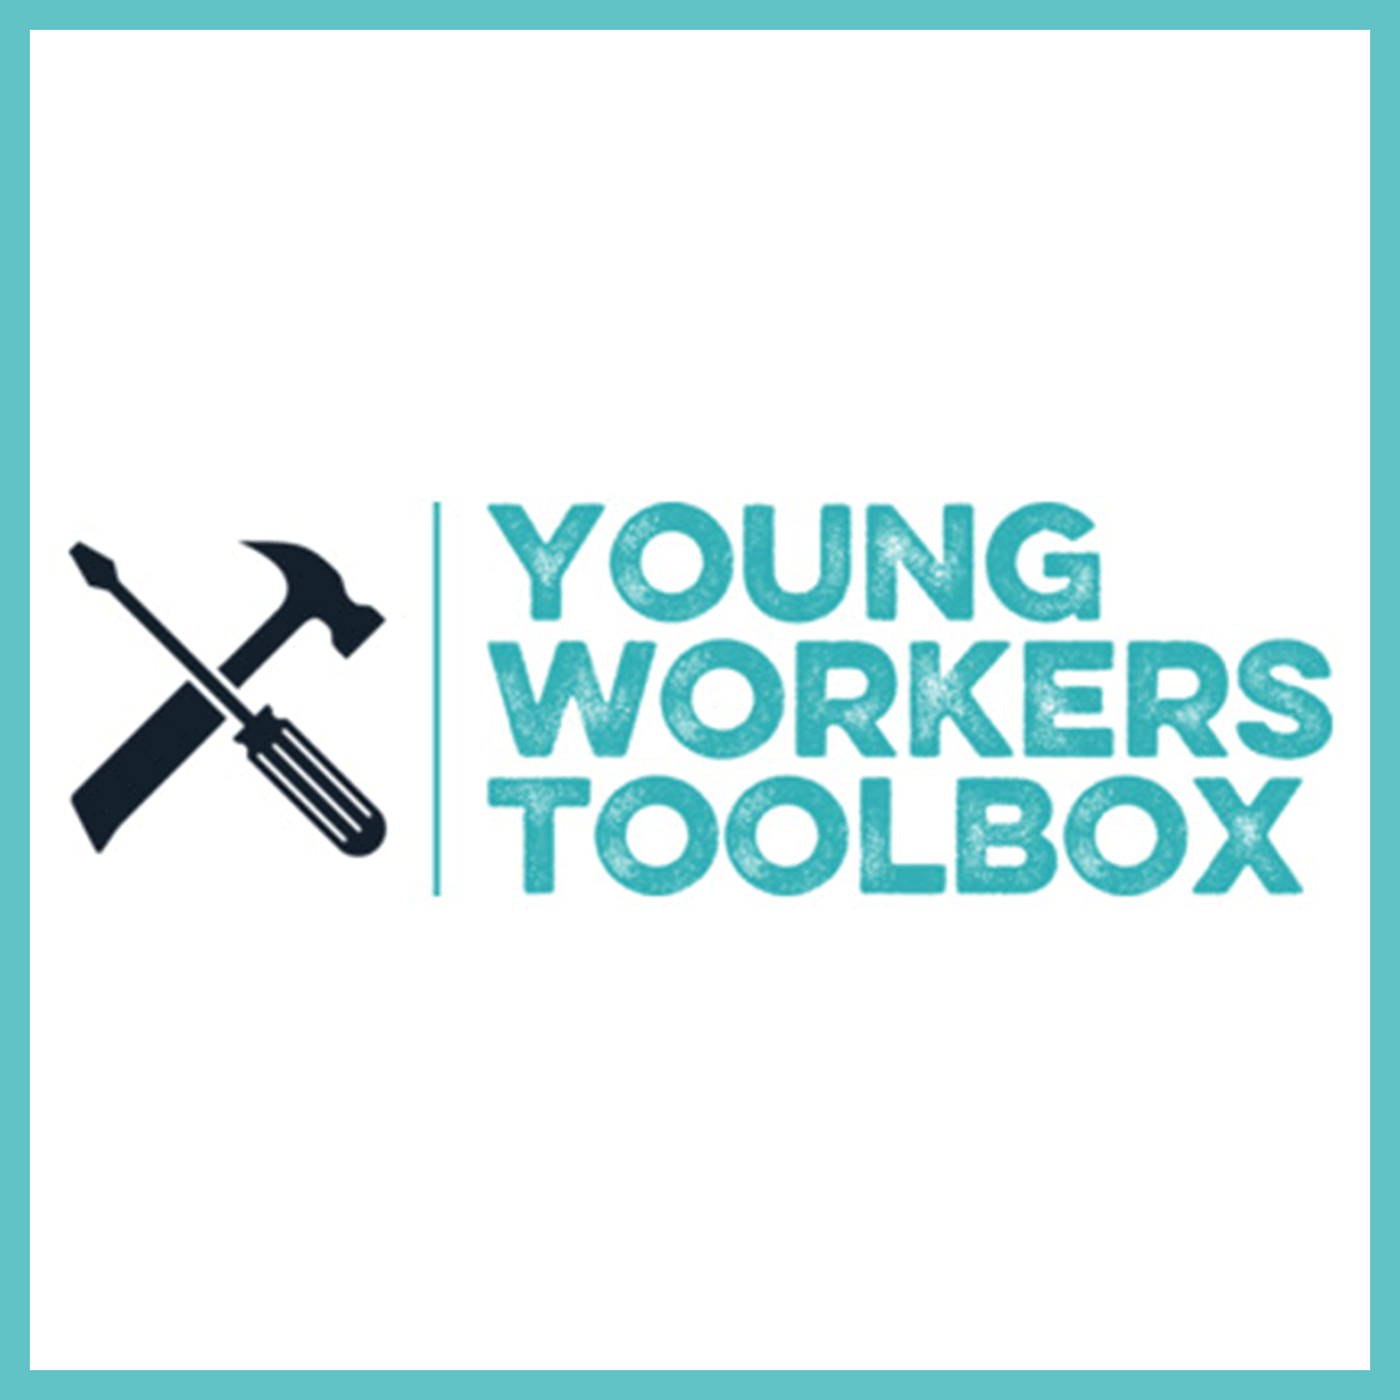 The Young Workers Toolbox - 18-09-2019